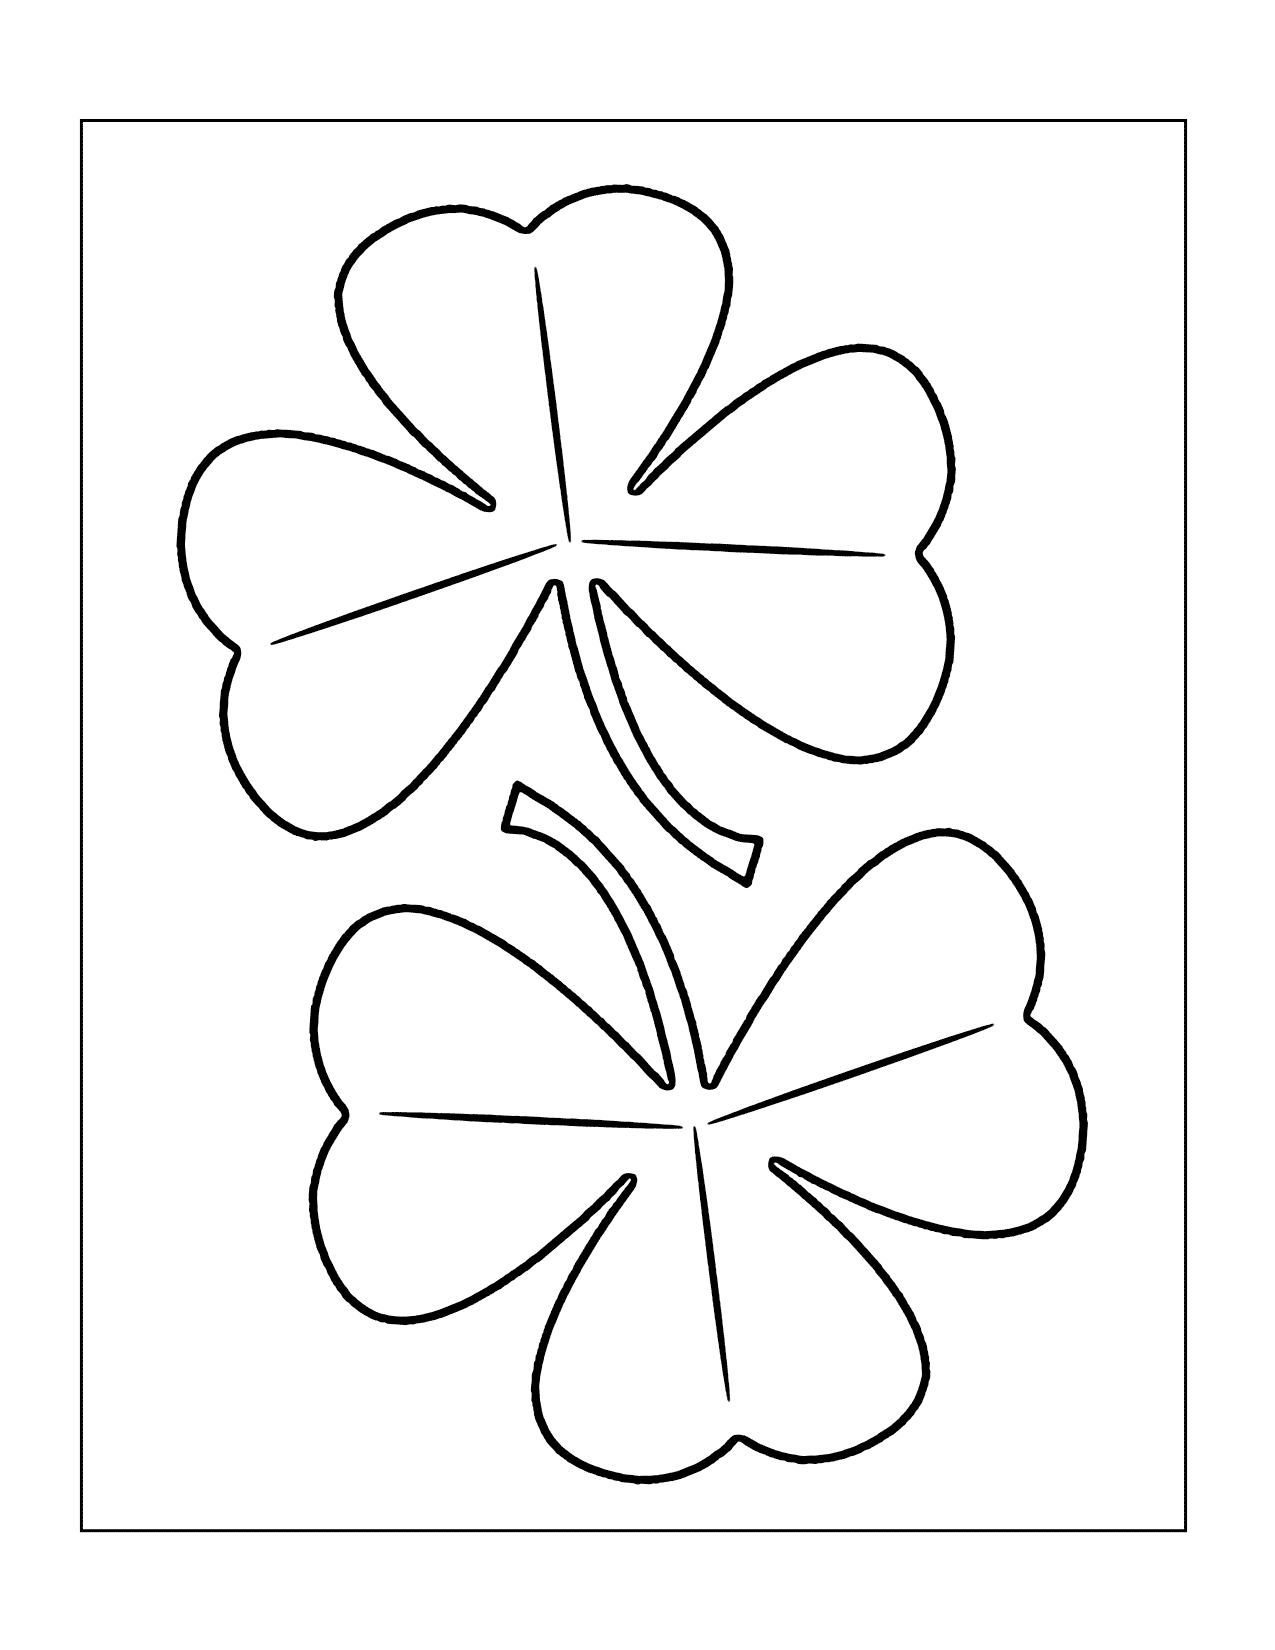 Easy Shamrocks Coloring Page